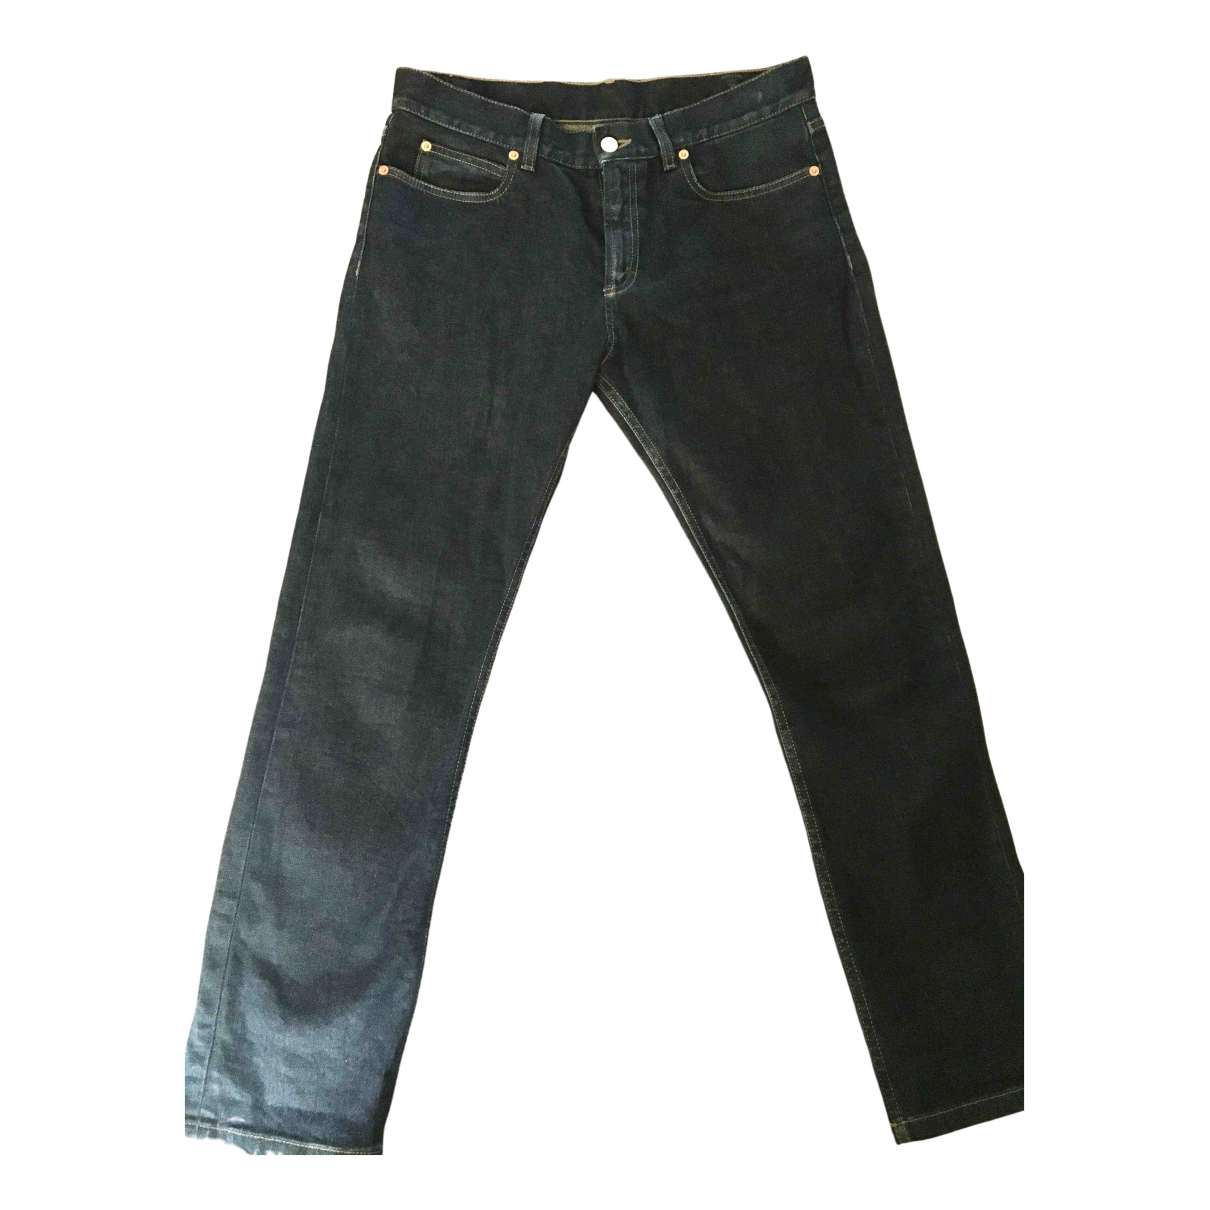 Gucci \N Blue Denim - Jeans Jeans for Women 38 FR